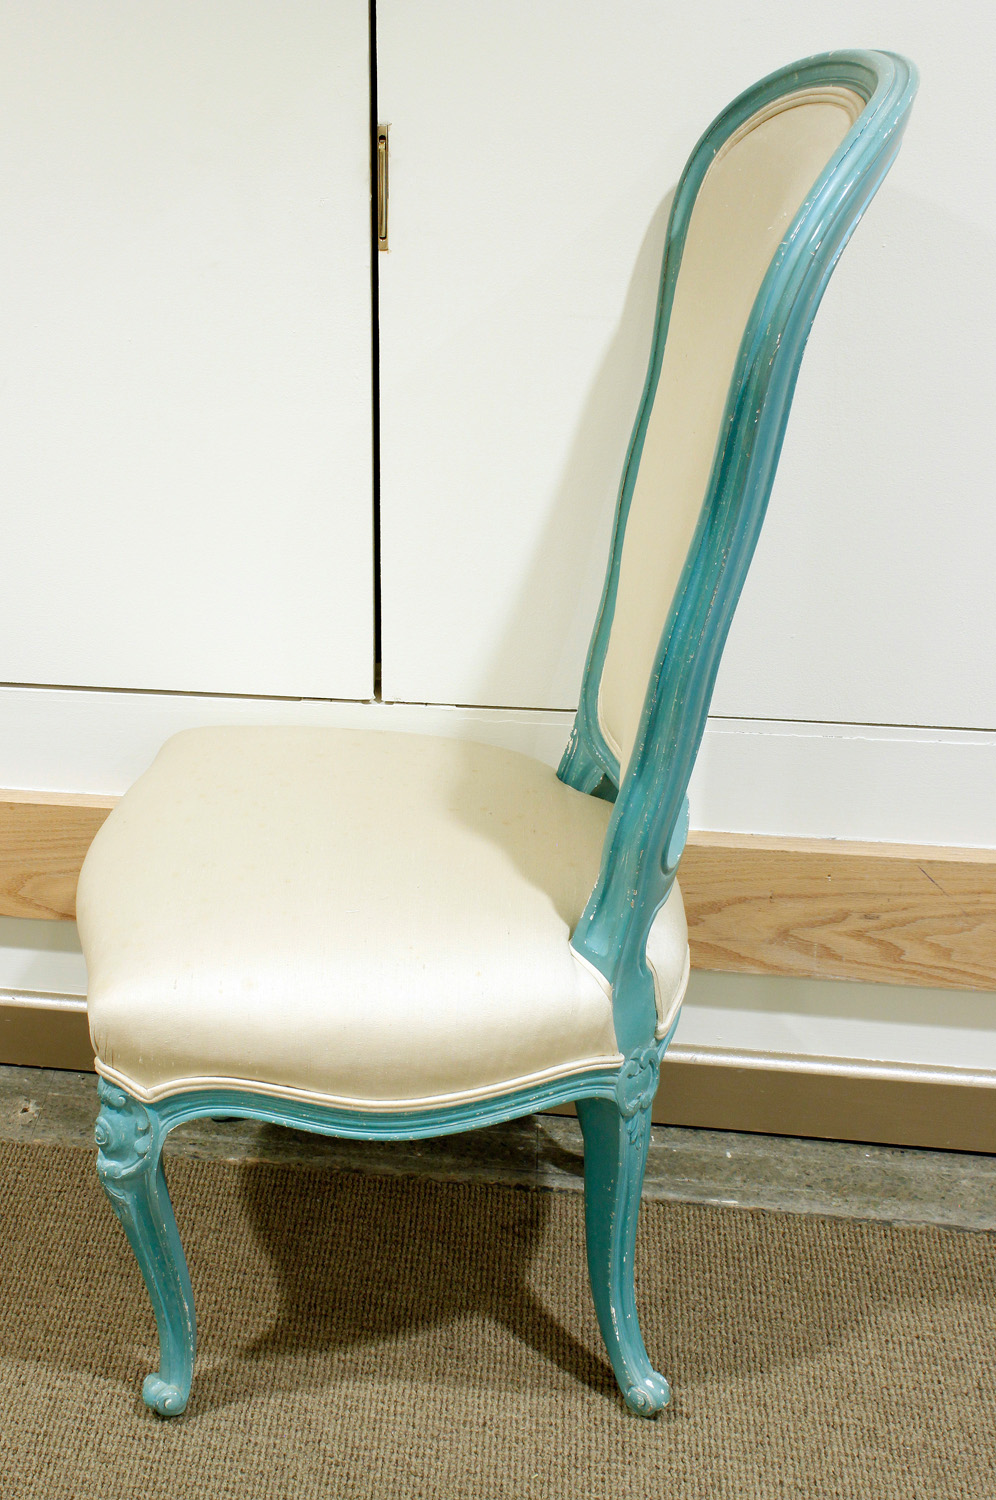 Auffray 120 blue lqr+silk diningchairs178 sde.jpg